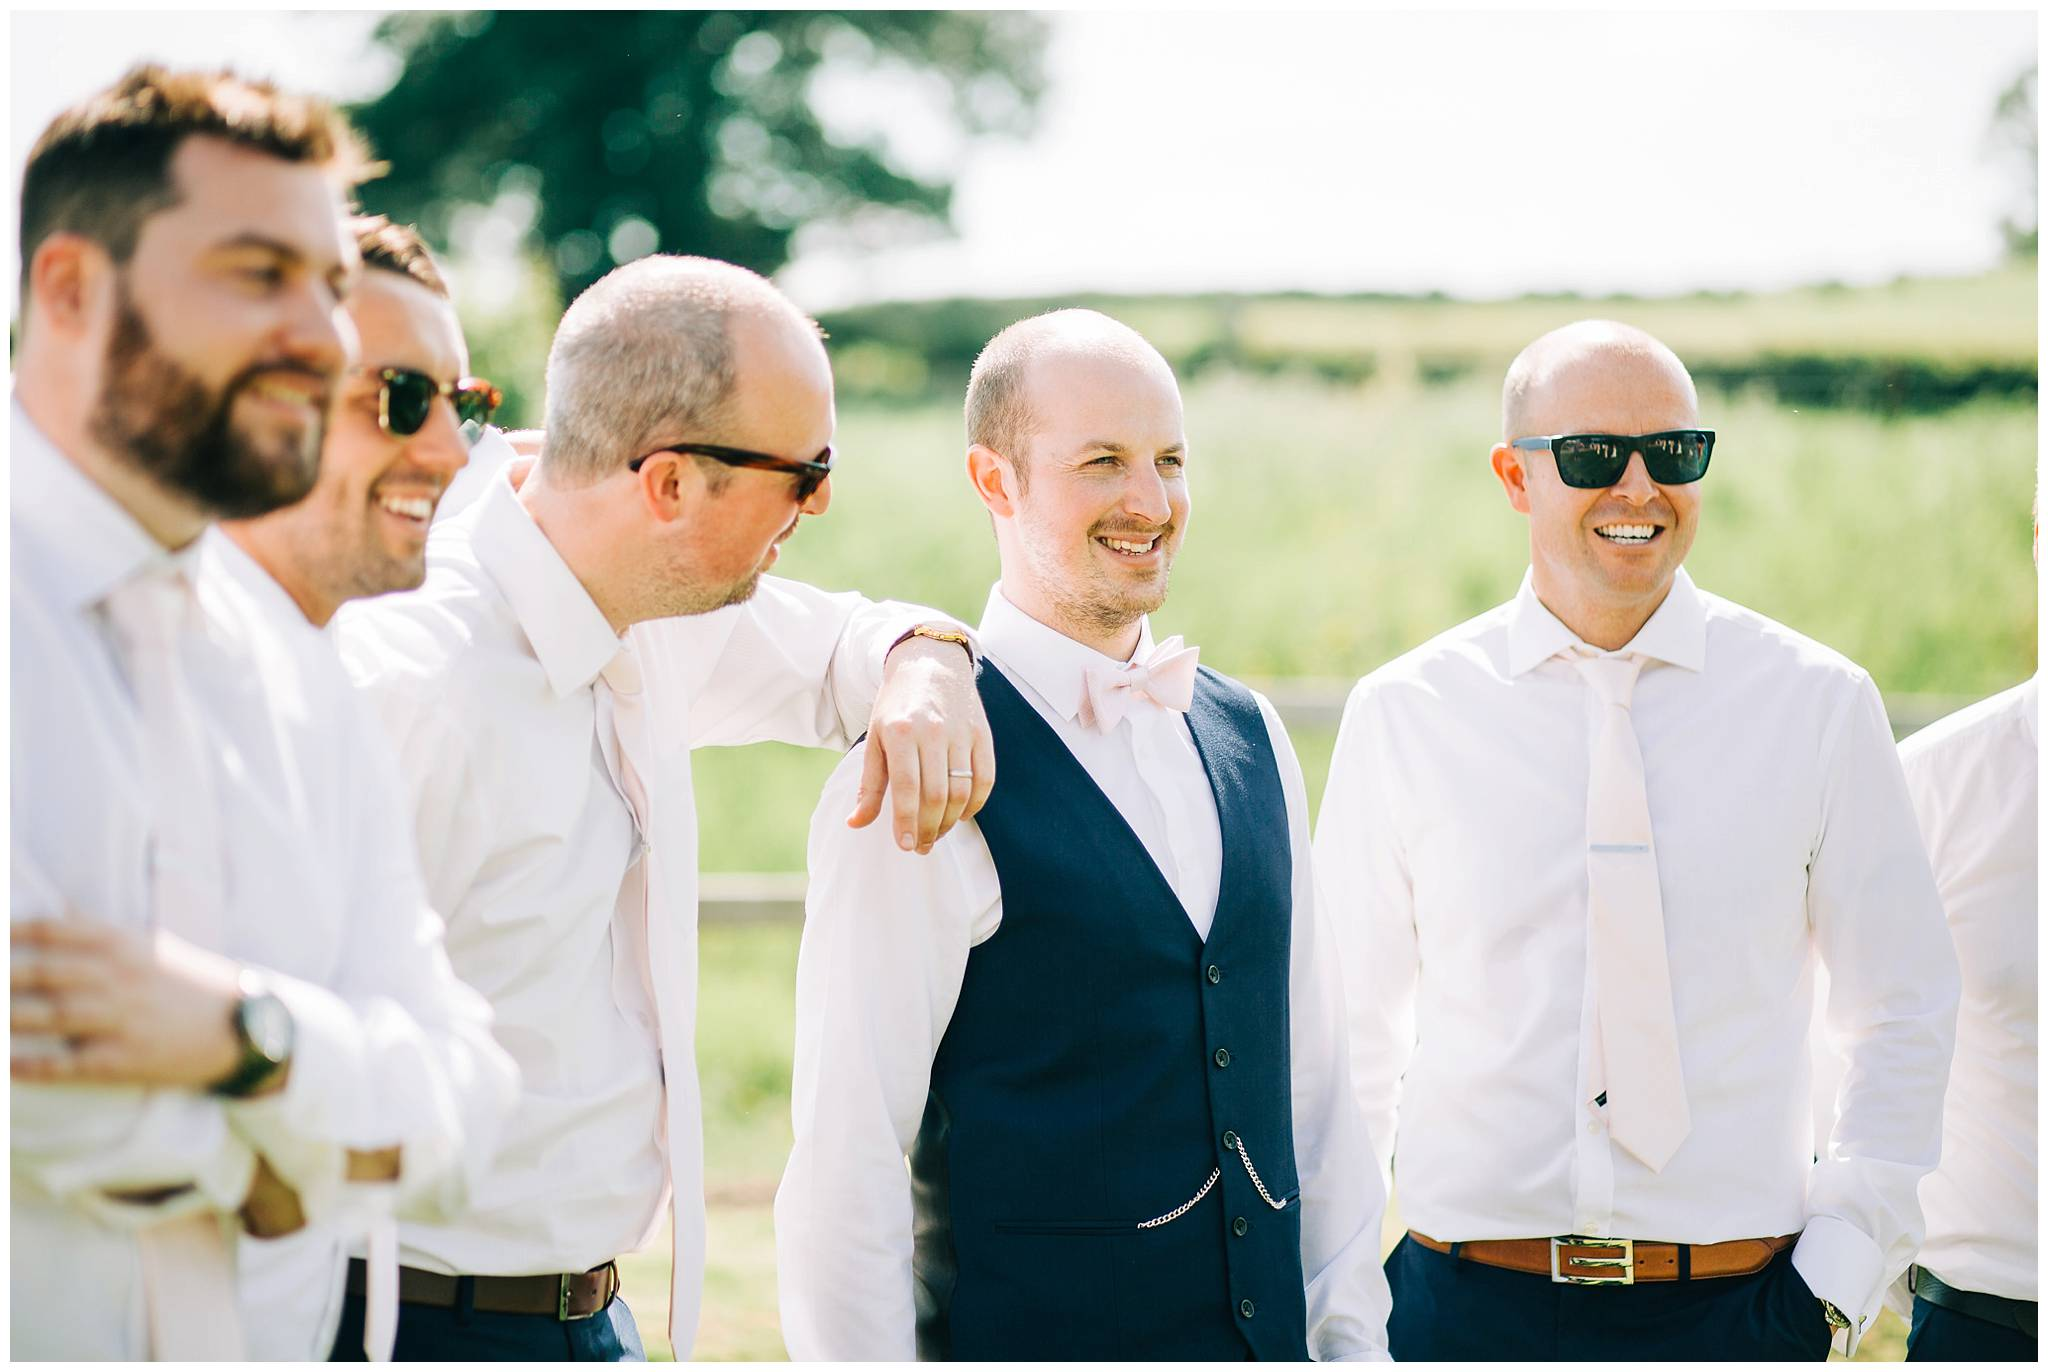 groom with all his groomsmen stood laughing and smiling for a group photograph